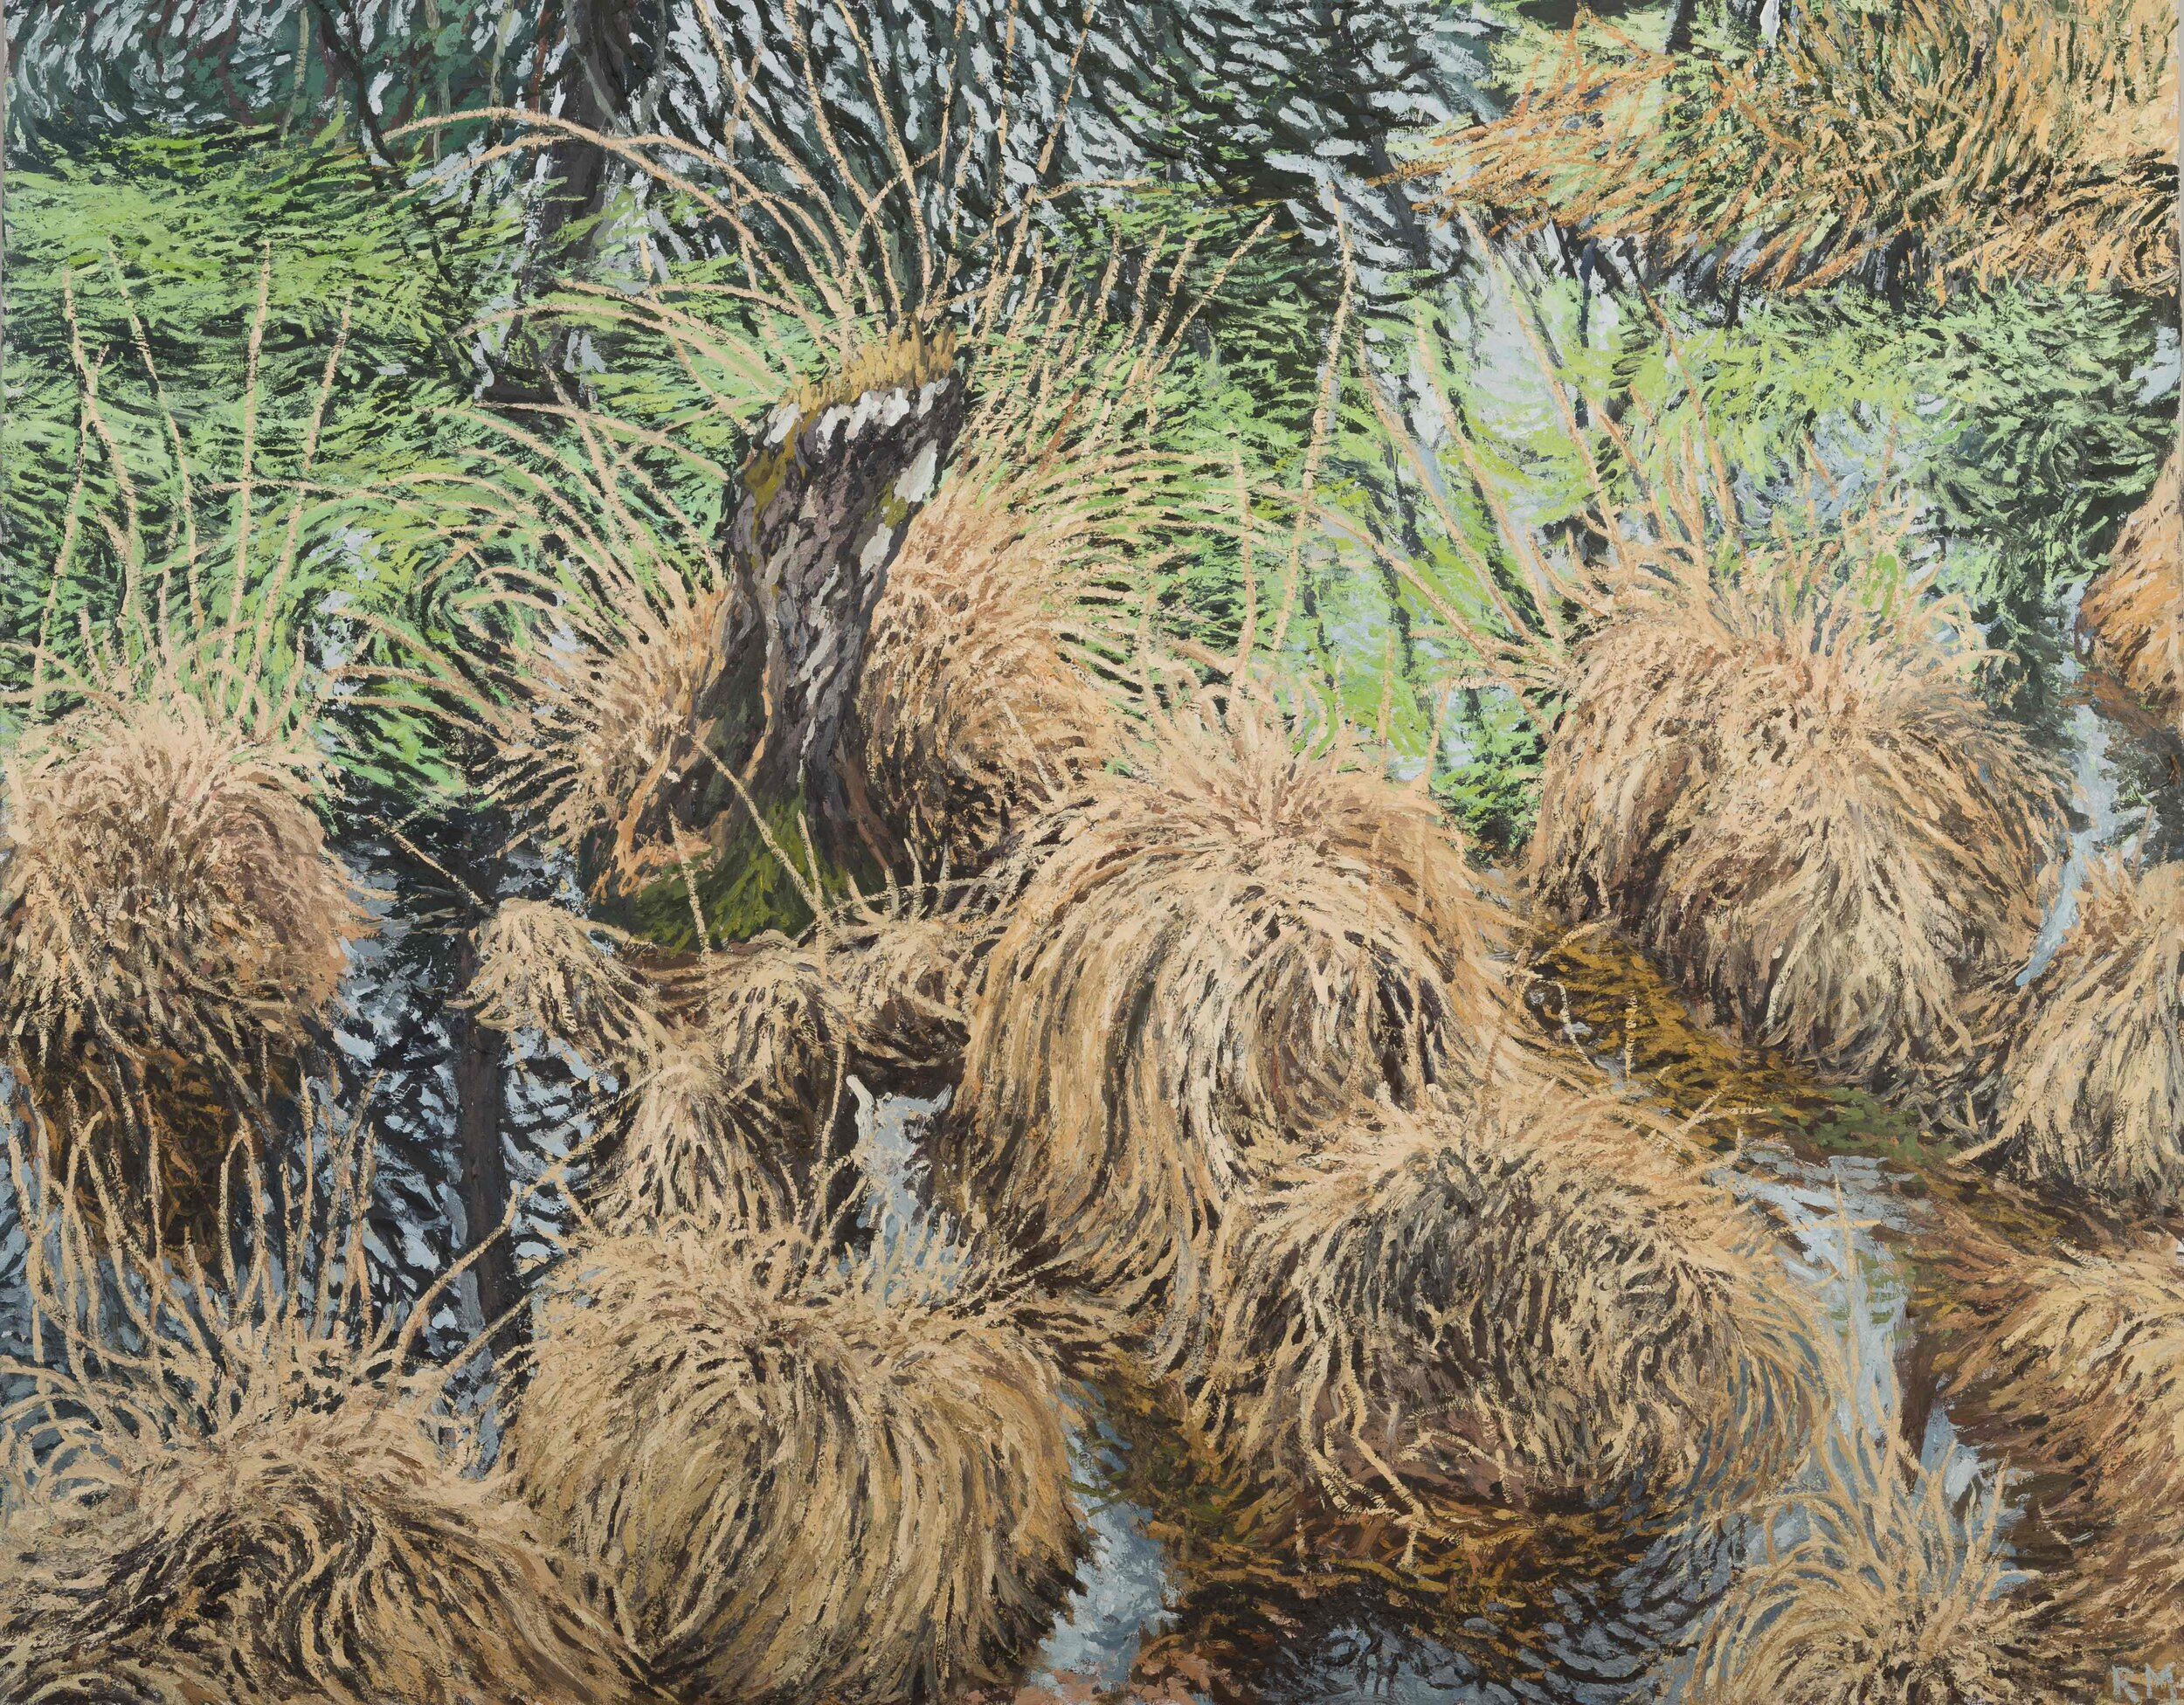 Grasses in a Pond (Mare aux Pigeons) on a Cloudy Day , 2018, Oil on canvas, 73 x 92 cm, £3850.